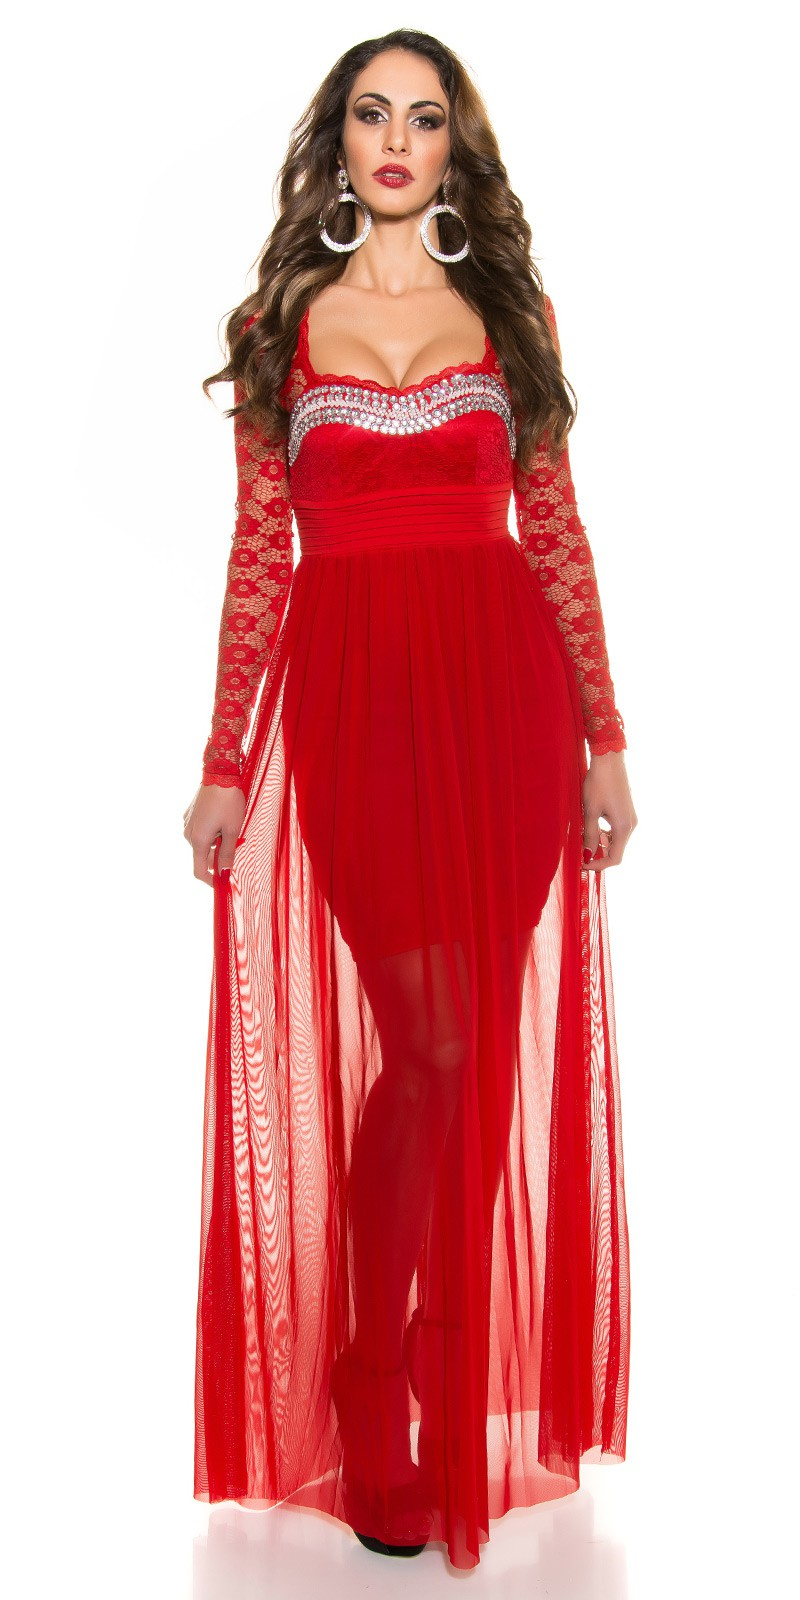 ooKoucla evening dress with lace  Color RED Size S 0000K9141 ROT 12. Dlhe  spolocenske saty s dlhym rukavom 5dcda663247